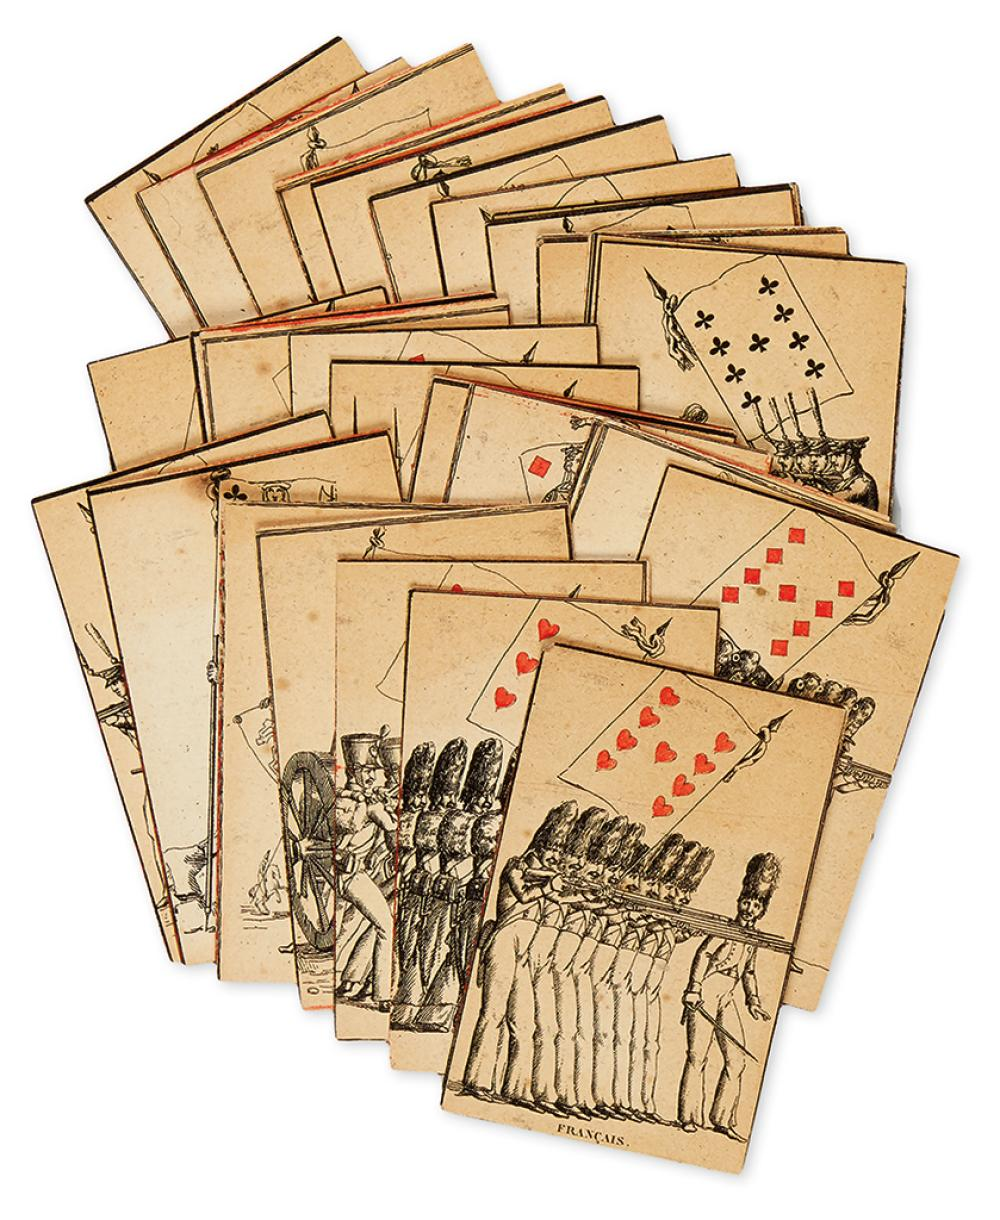 (PLAYING CARDS.) Jeu des Drapeaux [Flag Deck].